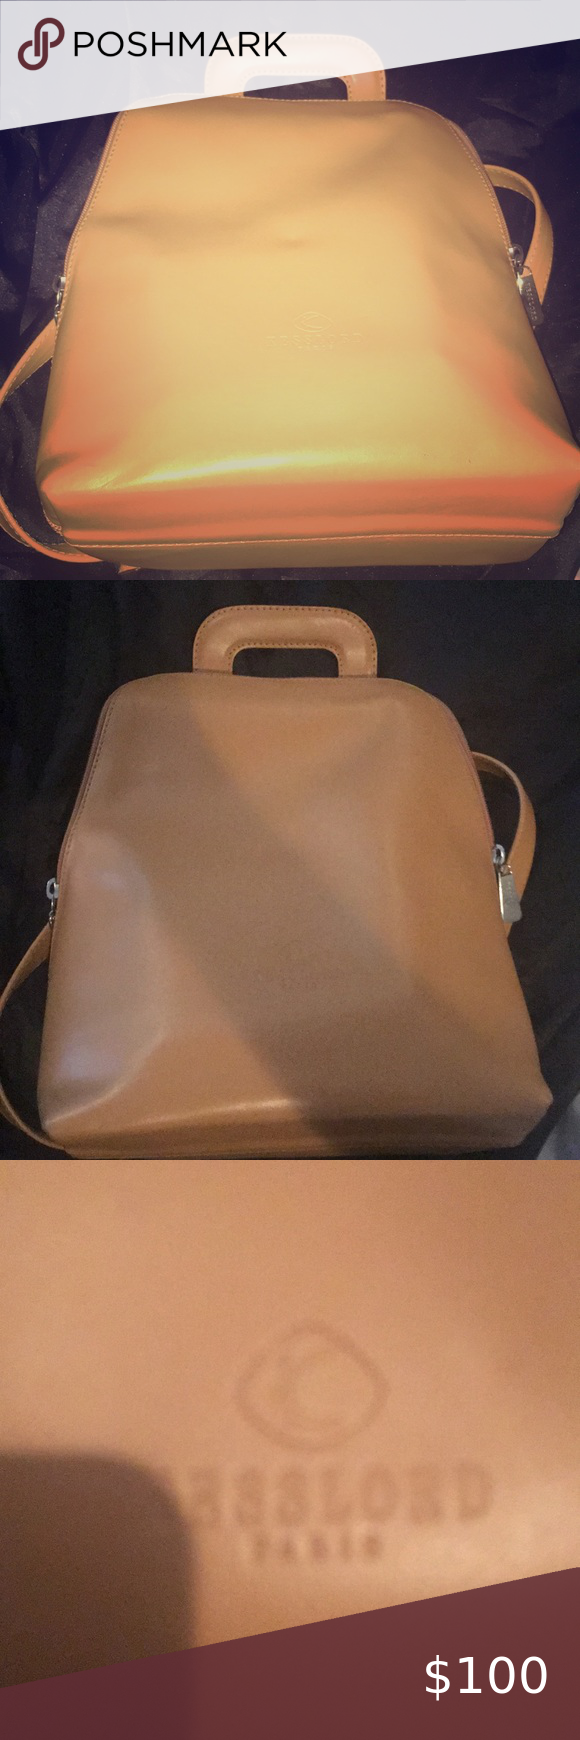 dad4f0cebb Authentic Kesslord Mini Backpack Authentic Kesslord Mini Backpack from  Paris. This was purchased from the